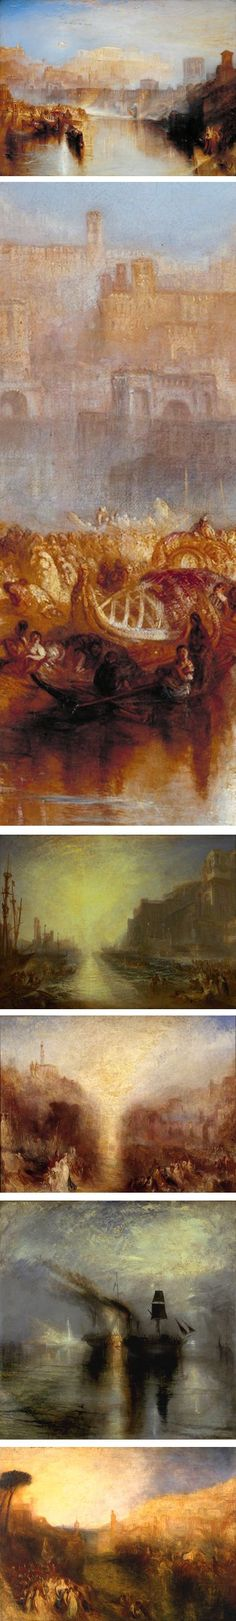 lines and colors :: a blog about drawing, painting, illustration, comics, concept art and other visual arts » The EY Exhibition: Late Turner – Painting Set Free